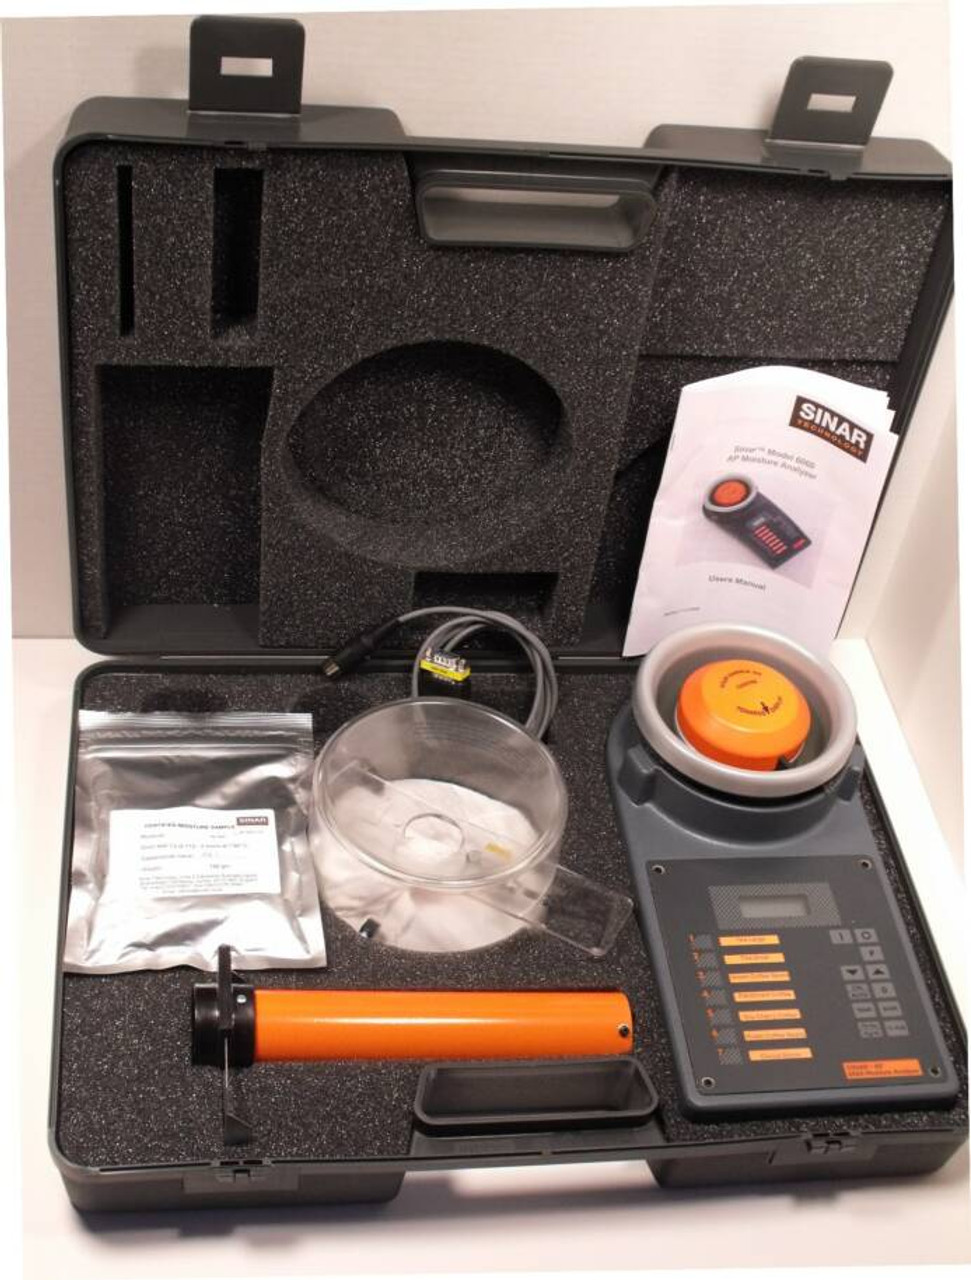 COMPLETE WITH CASE, LOADING HOPPER, CALIBRATION SAMPLE